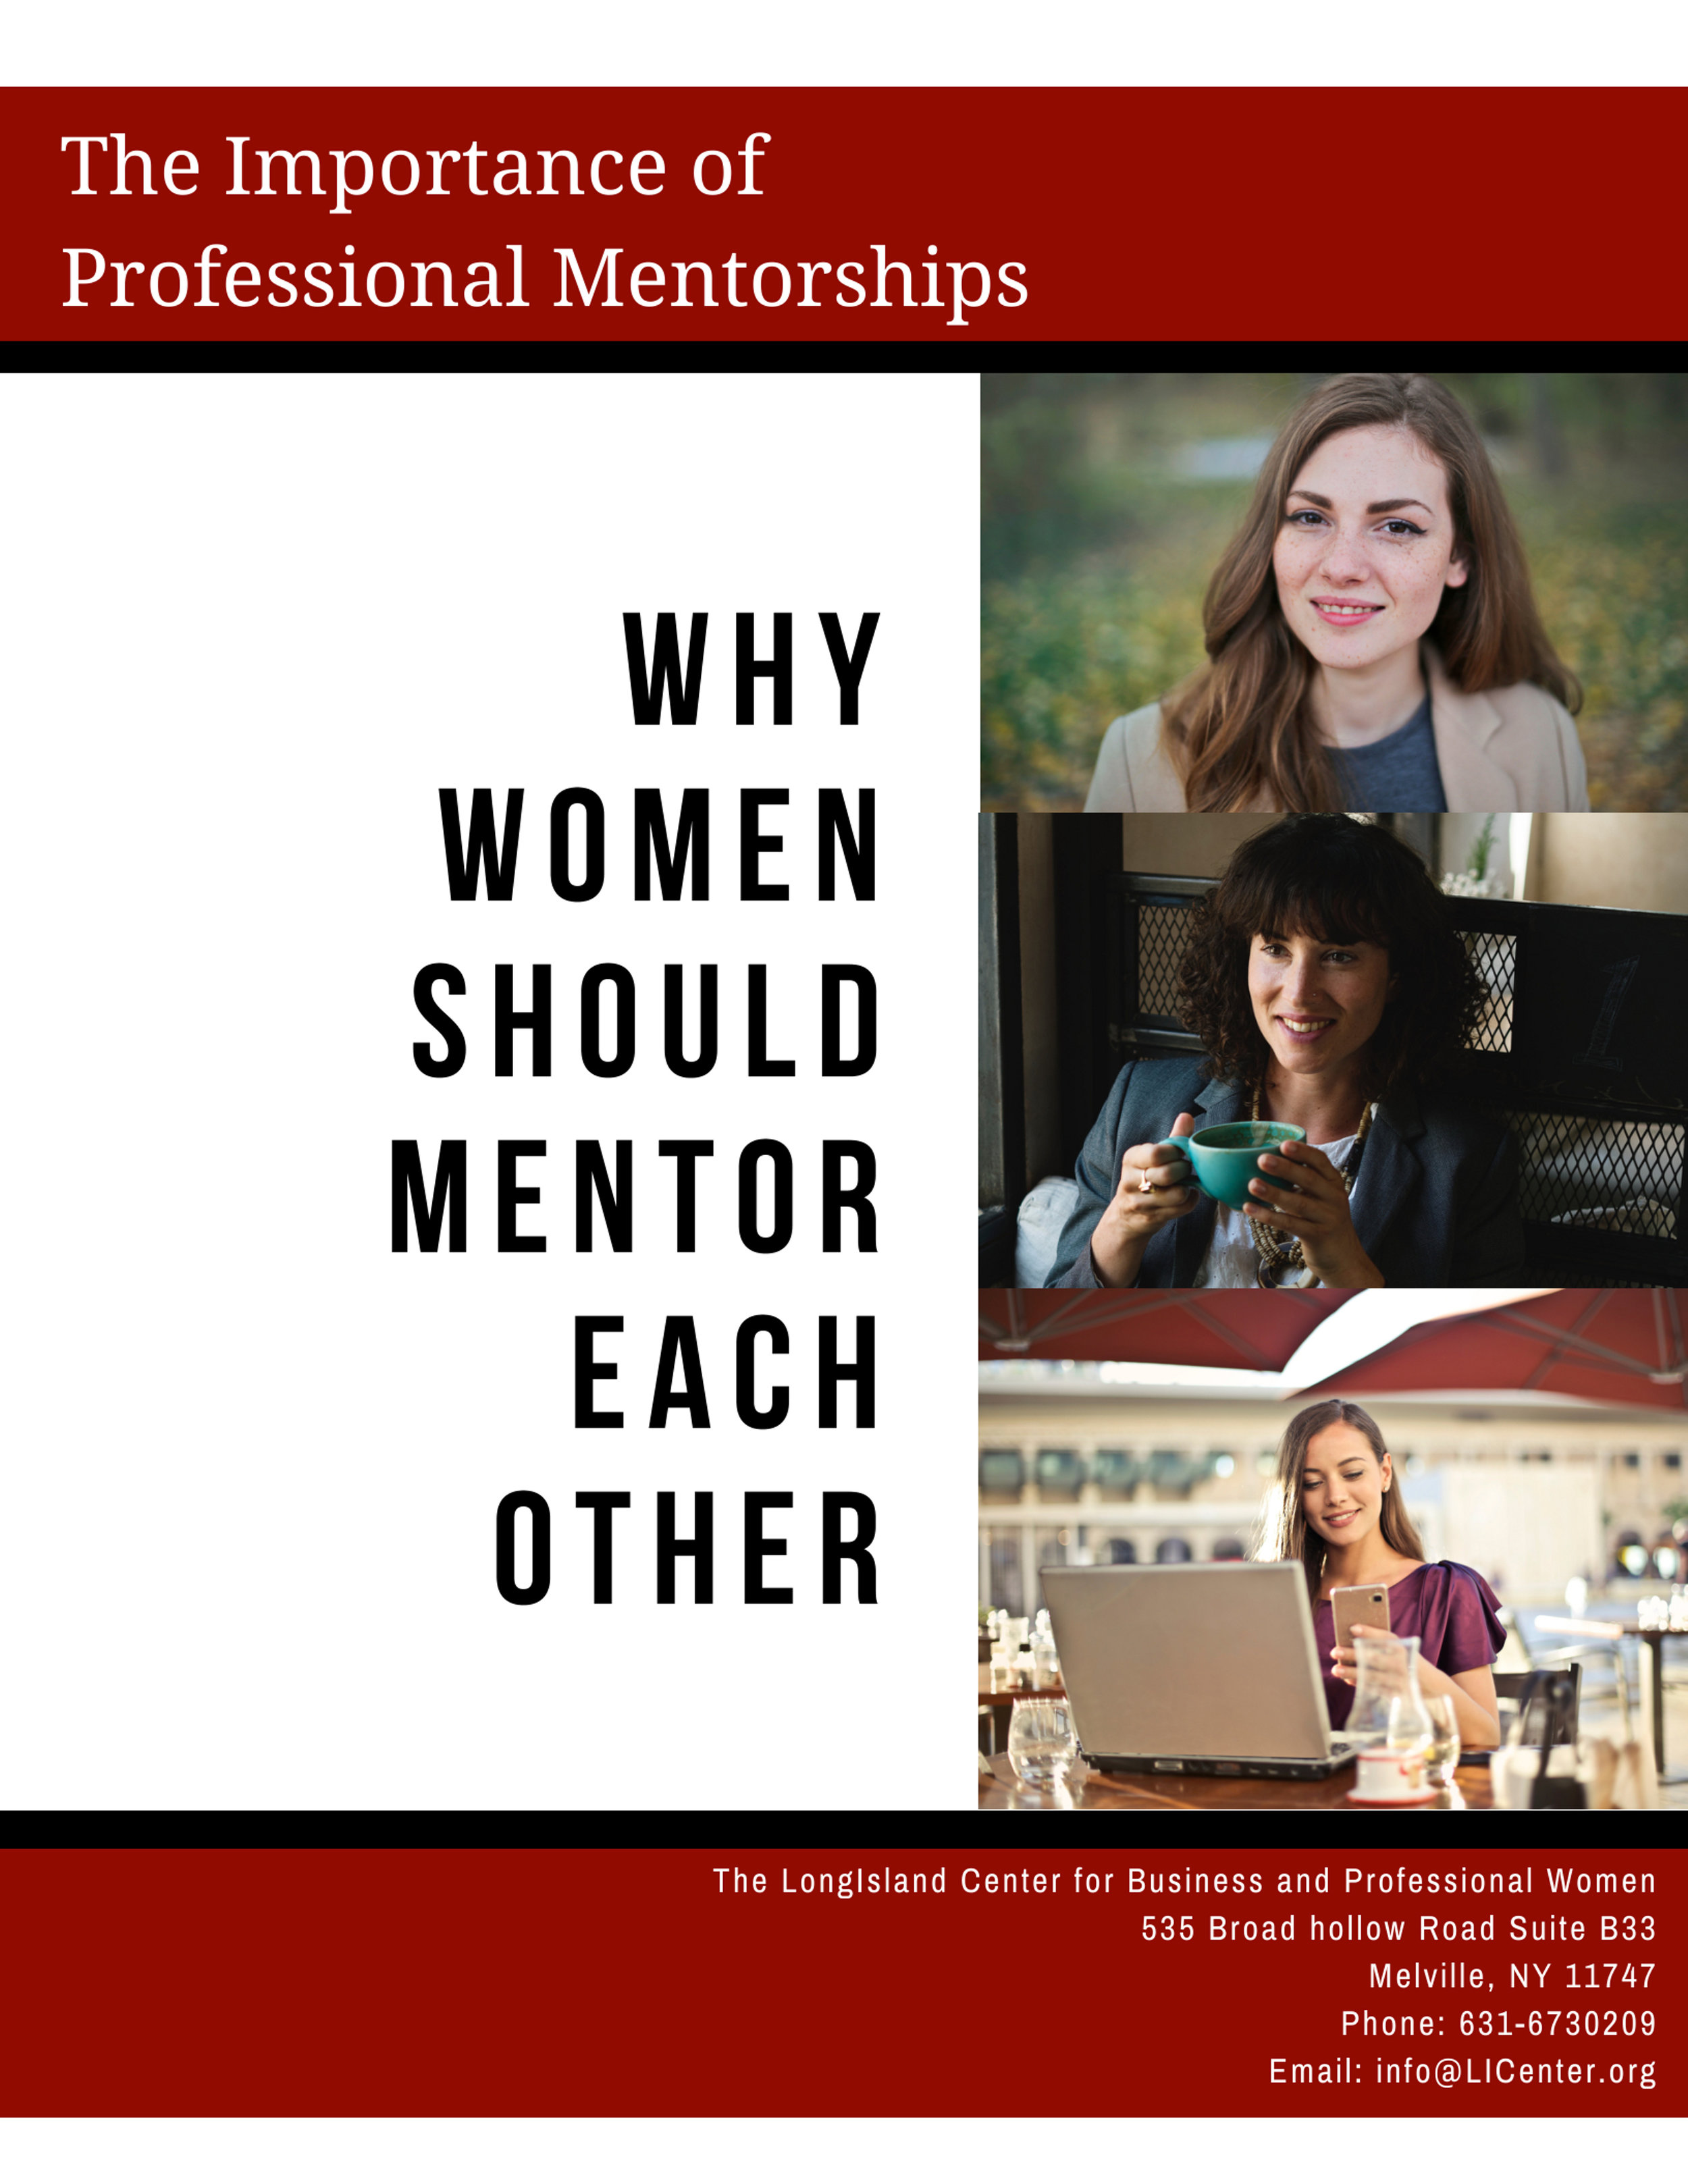 Download Here - Title: The Importance of Professional Mentorships (Why Women Should Mentor Each Other)